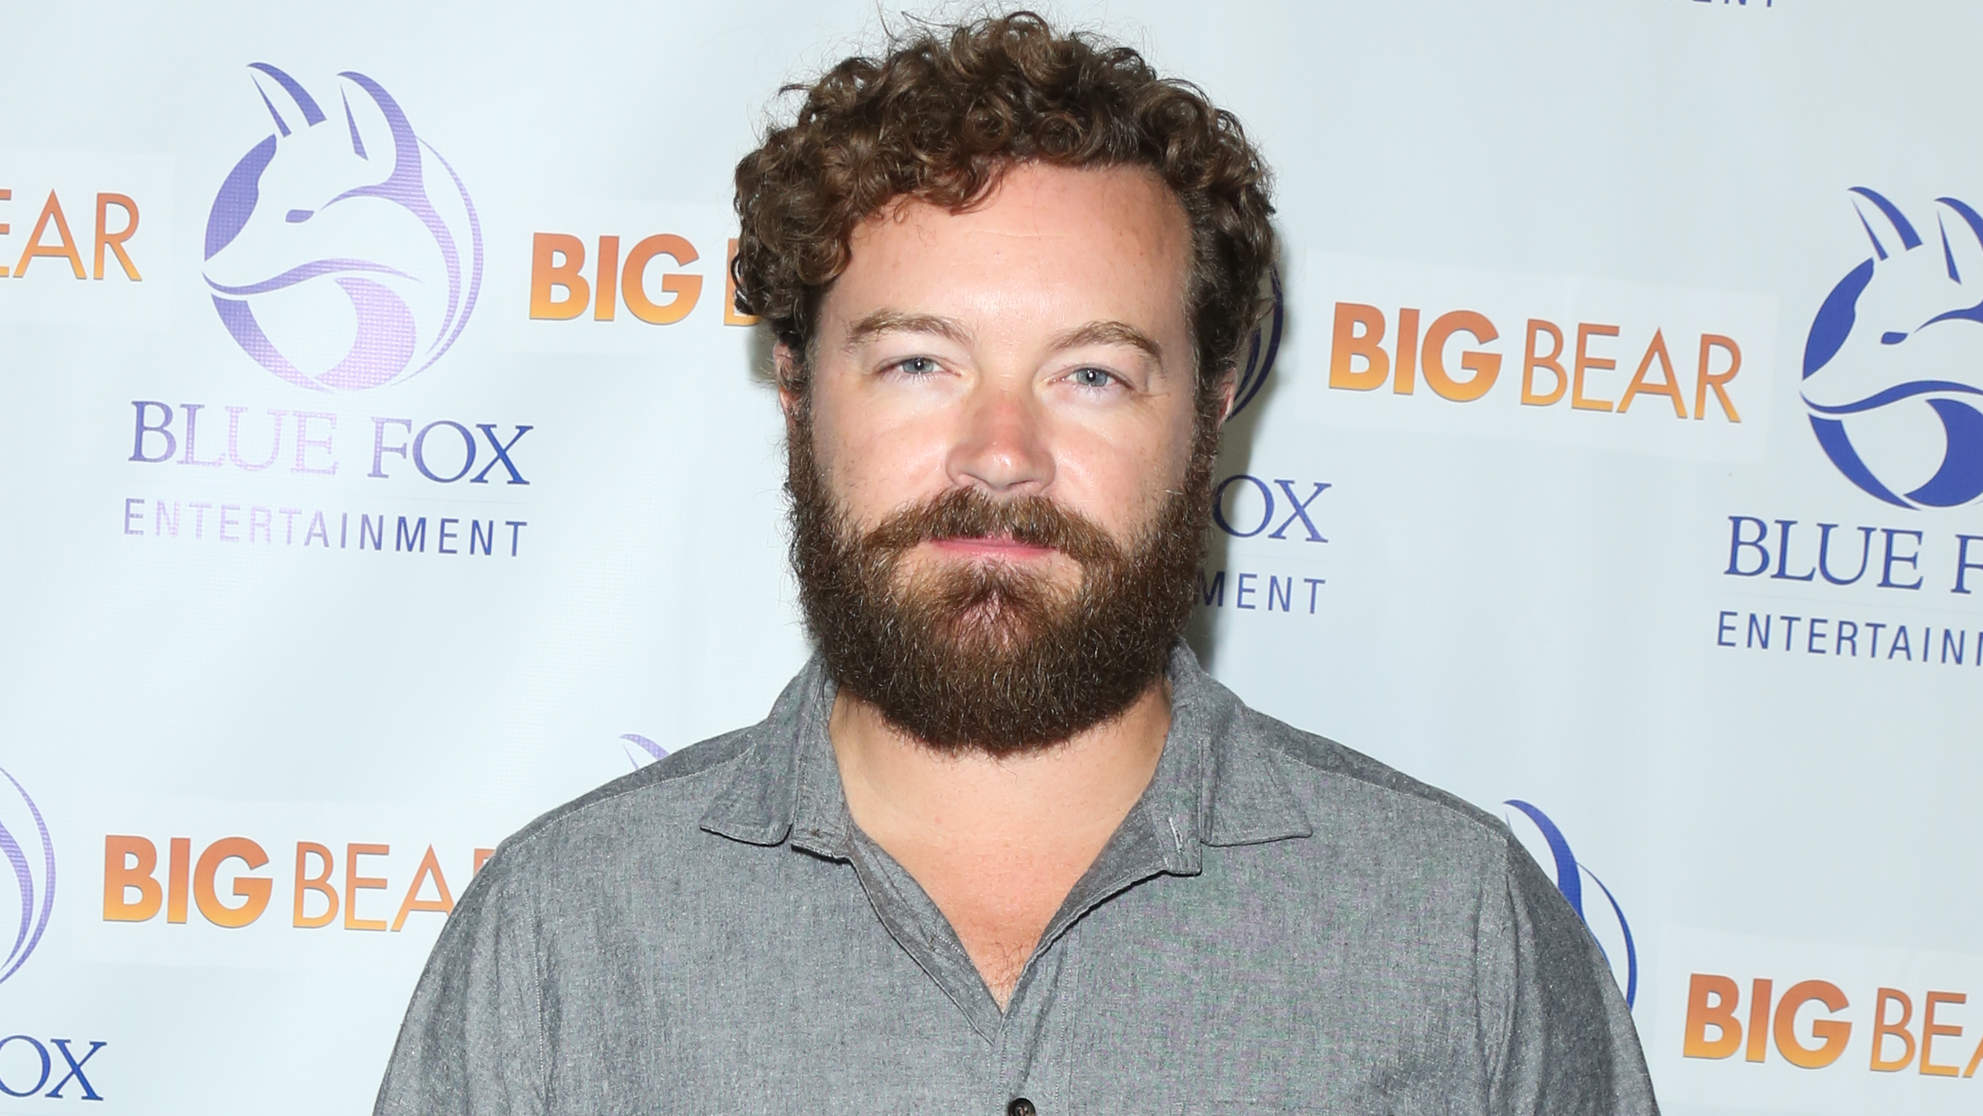 Netflix Cuts Ties With Danny Masterson Following Rape Allegations